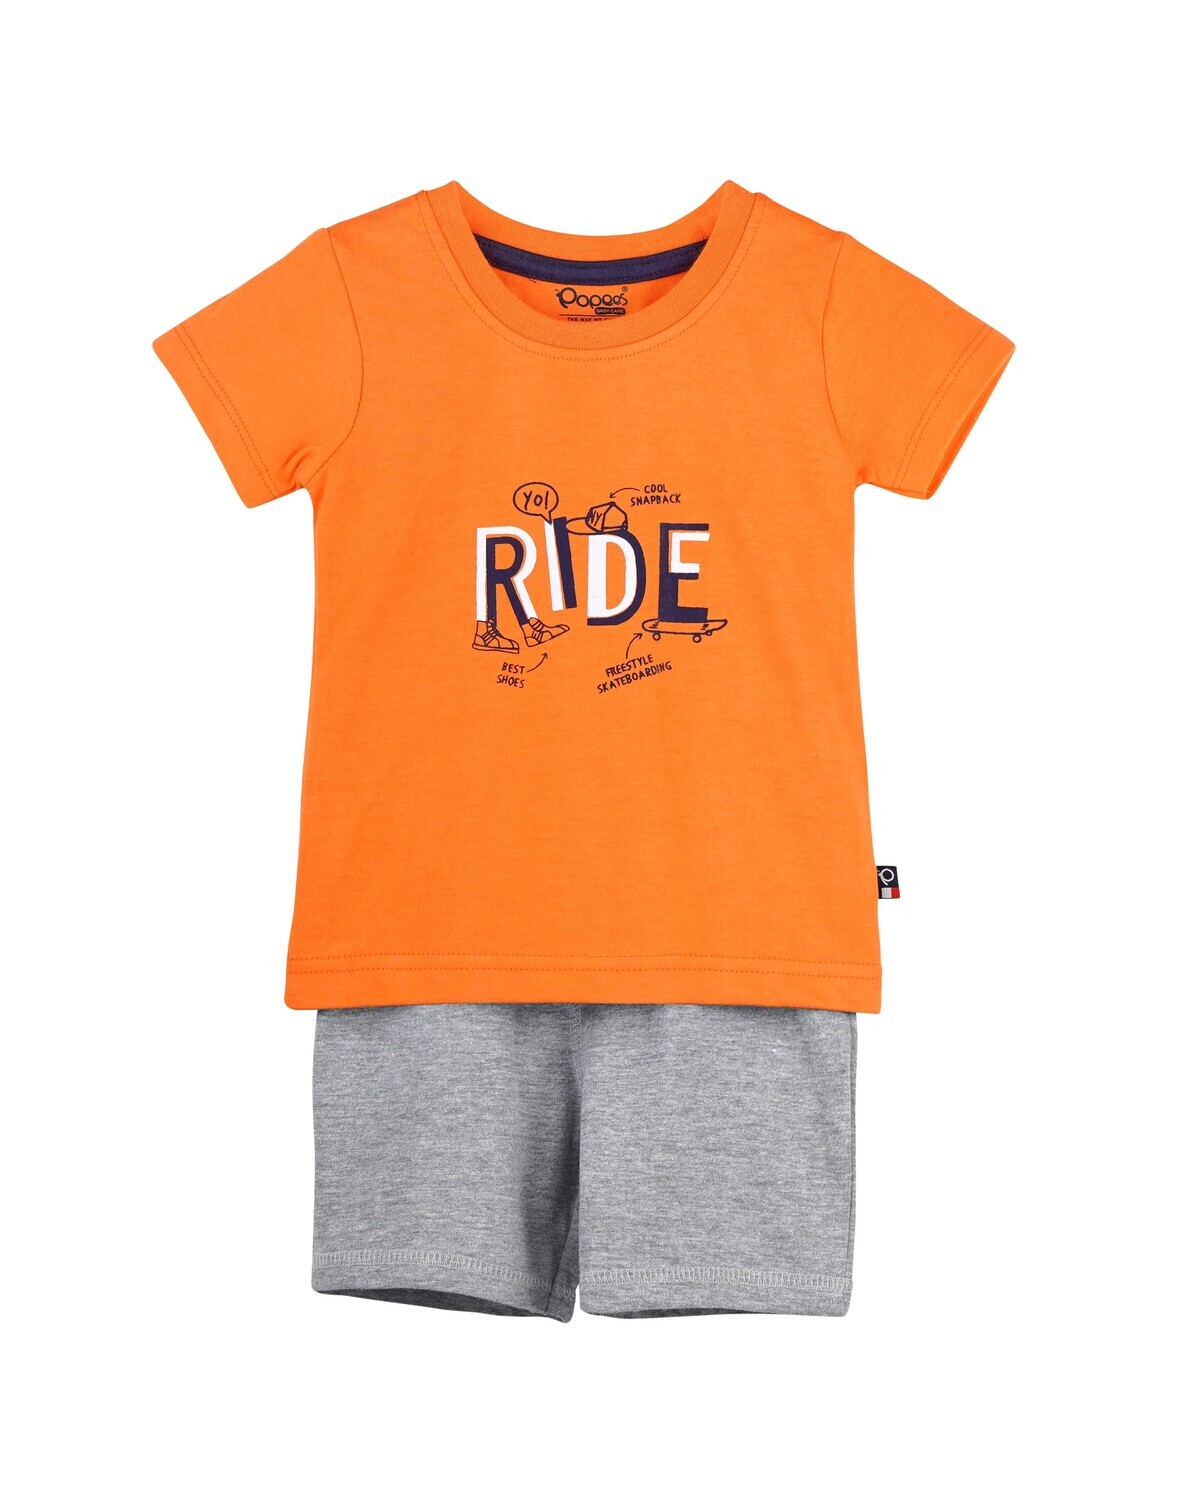 CADOC NECTARINE Half Sleeve Top and Shorts for Baby Boys